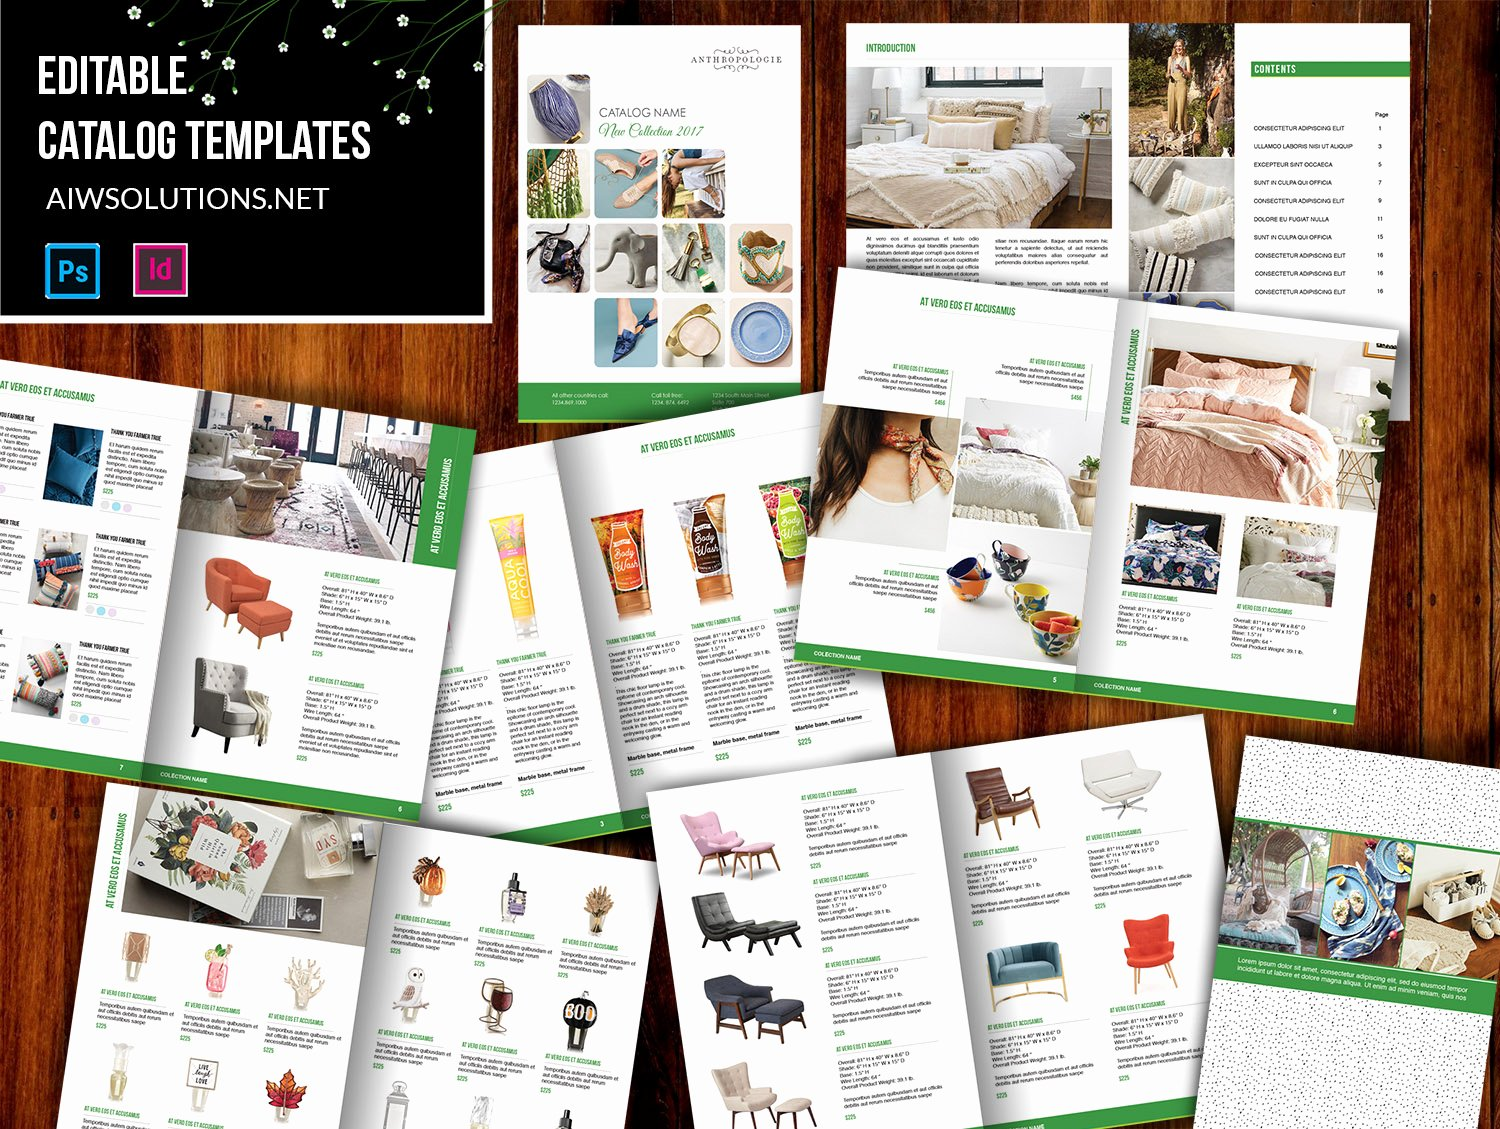 Product Catalog Design Template Elegant Knowledge 2 Share